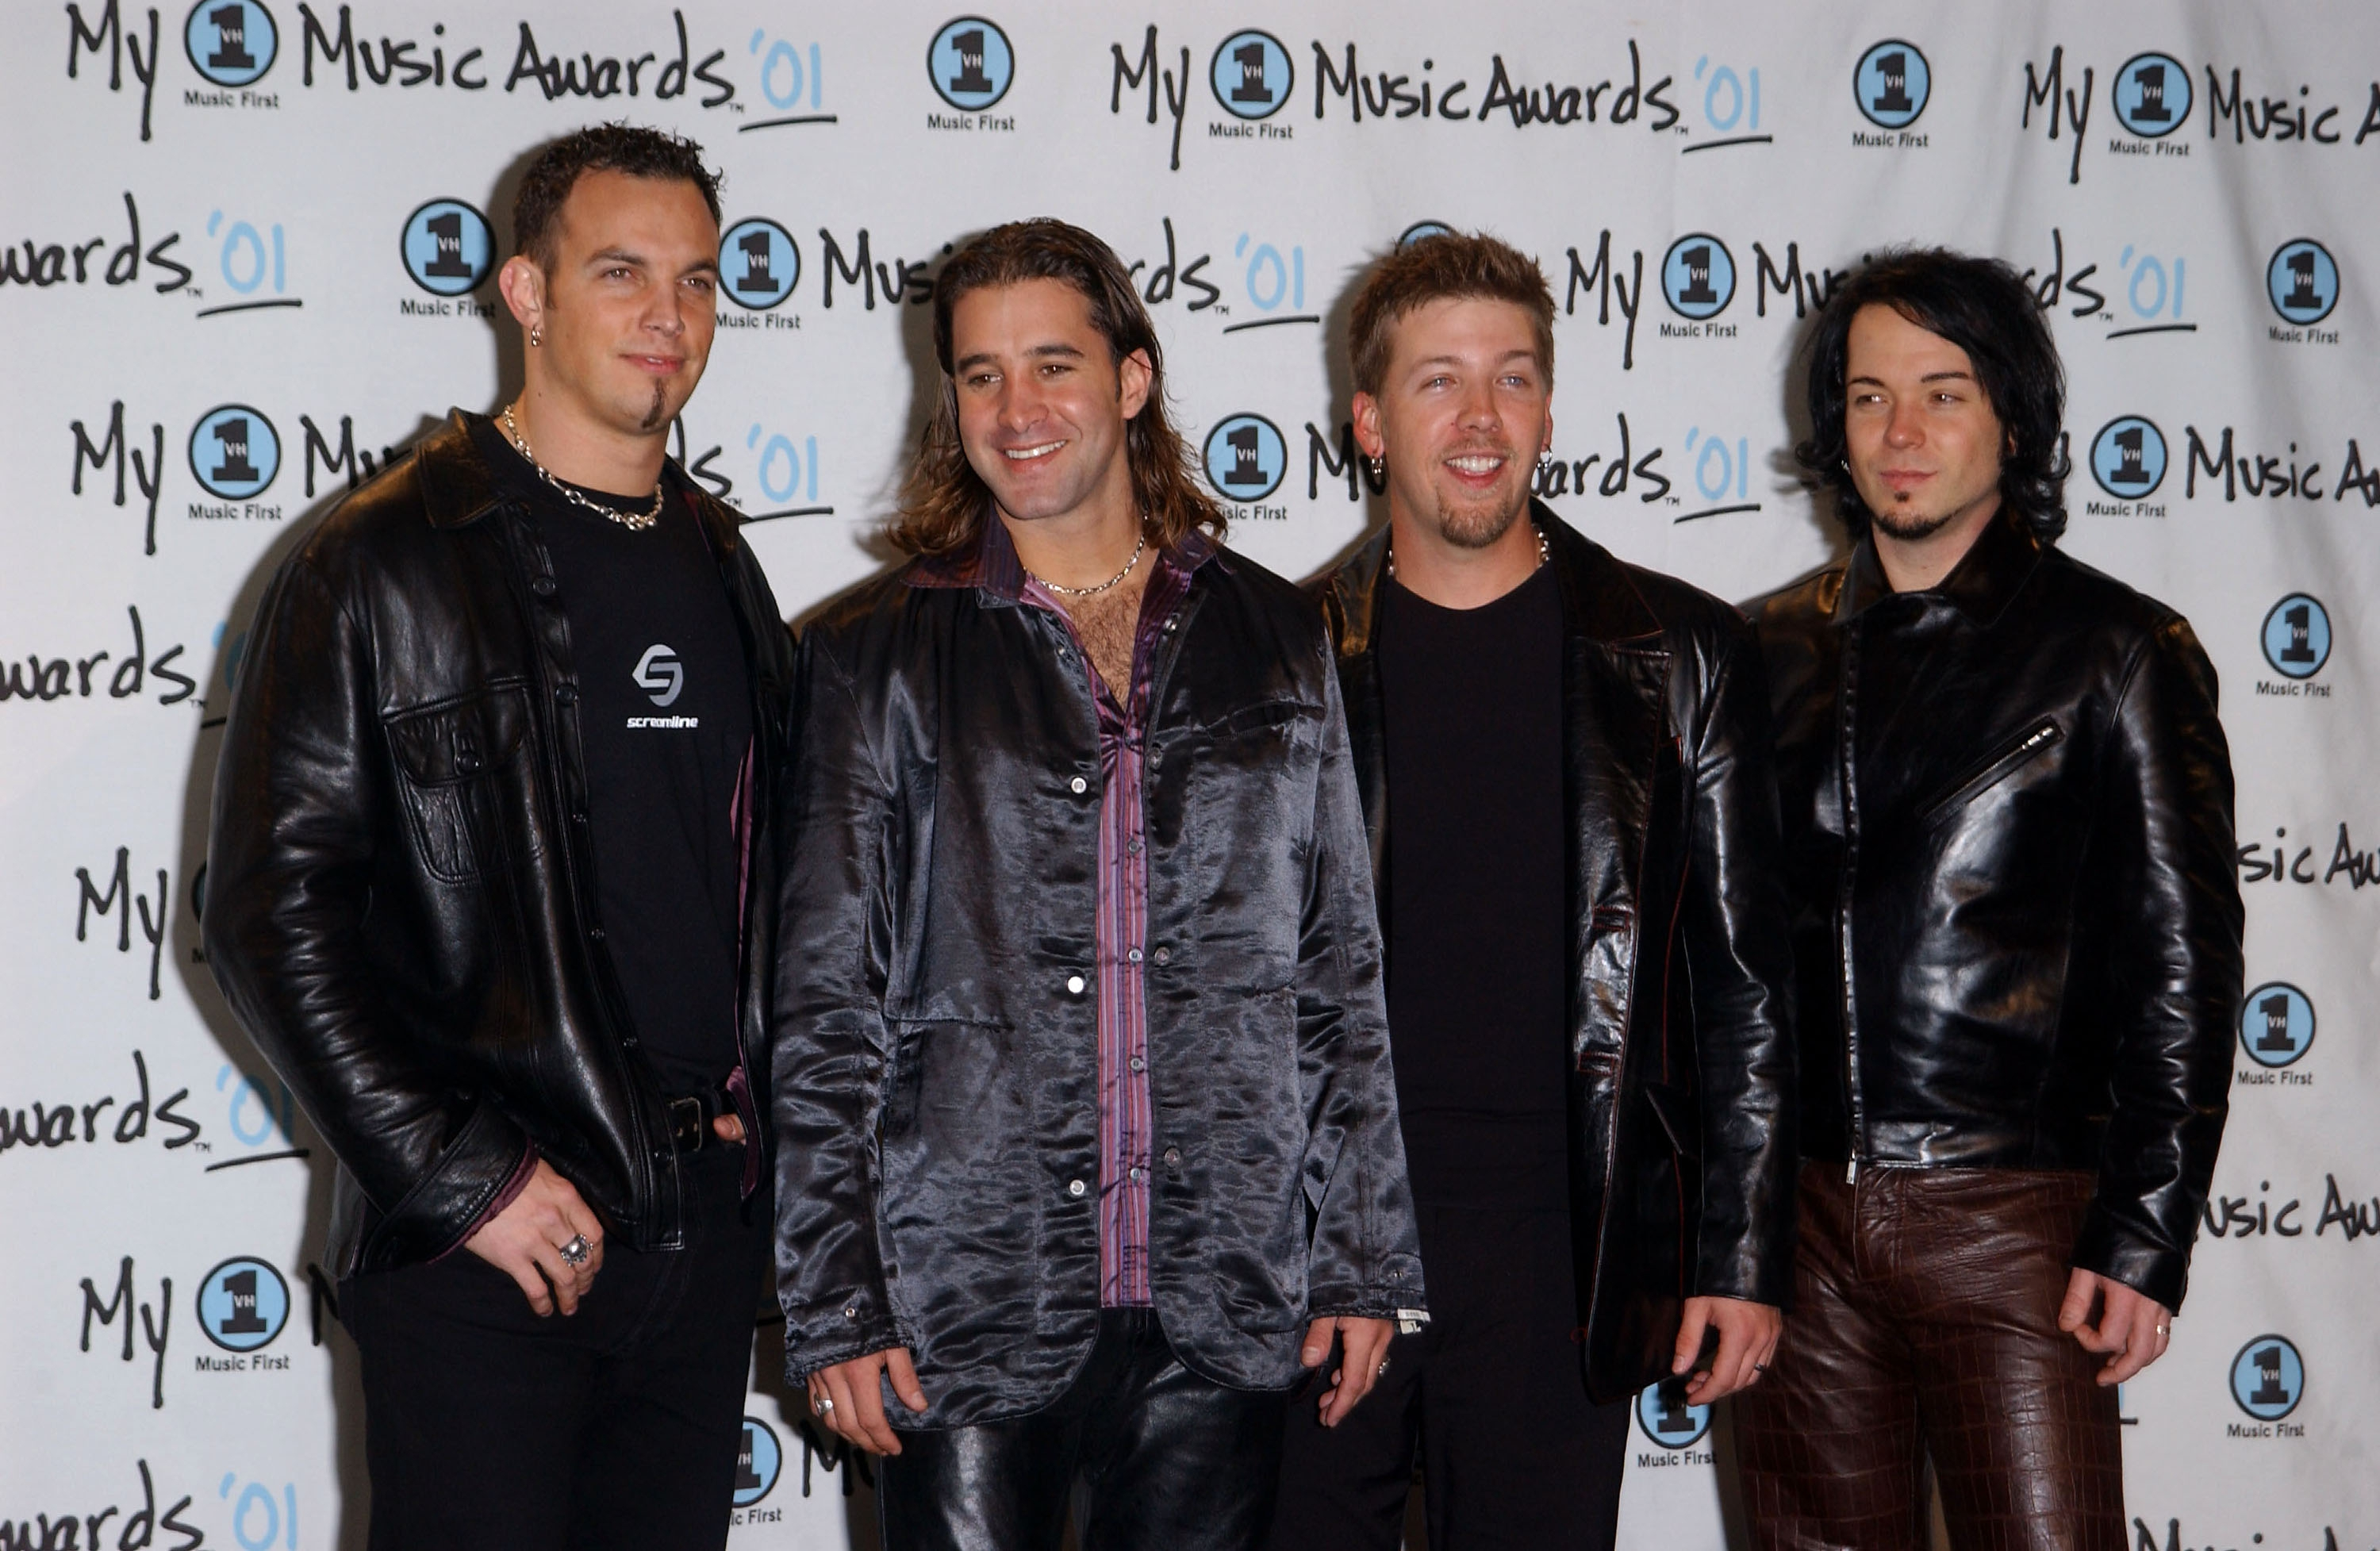 Pictures Of Nickleback